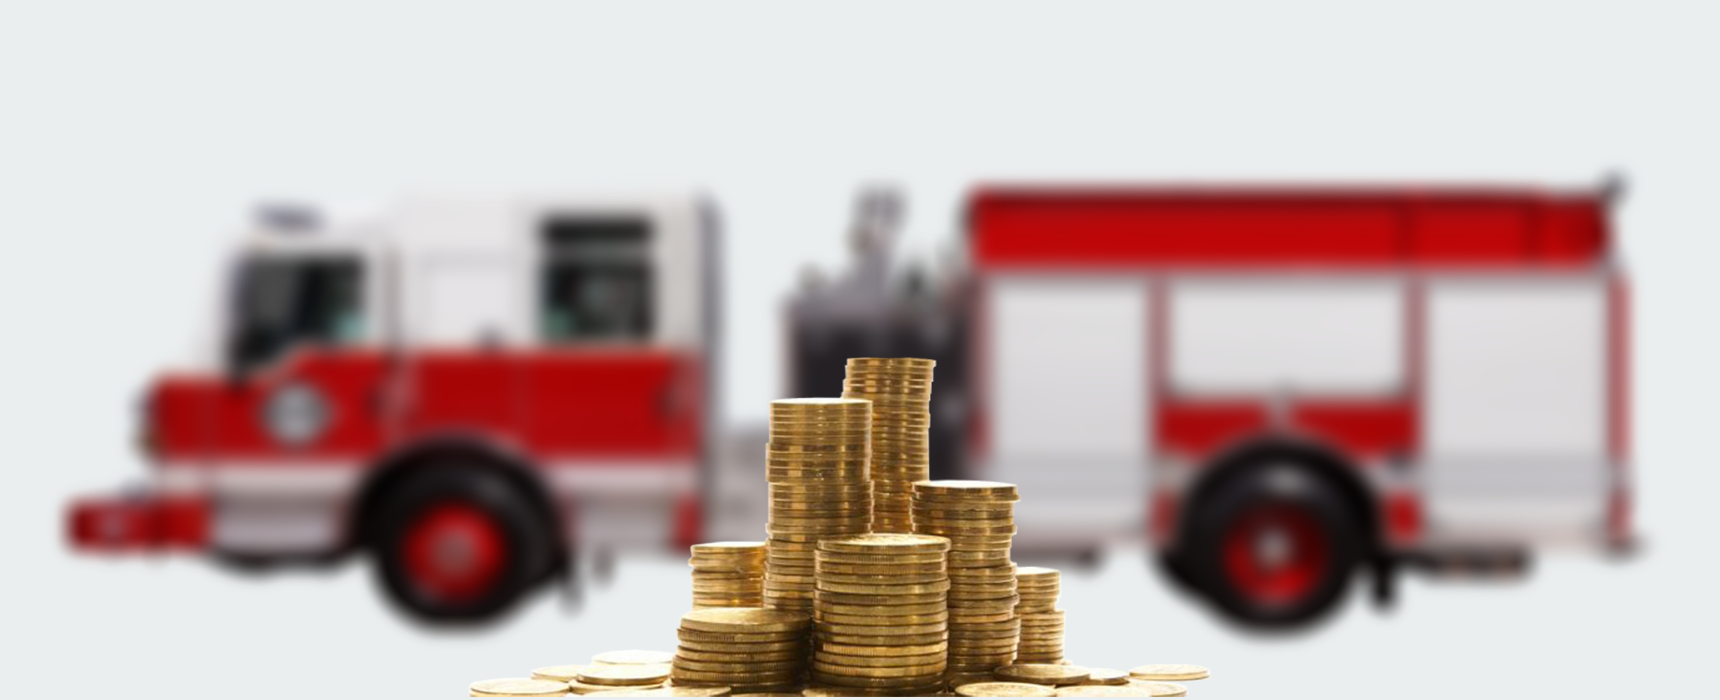 Focussed , close up image of coins with a blurred background of a Pierce firetruck available for leasing purchase programs.